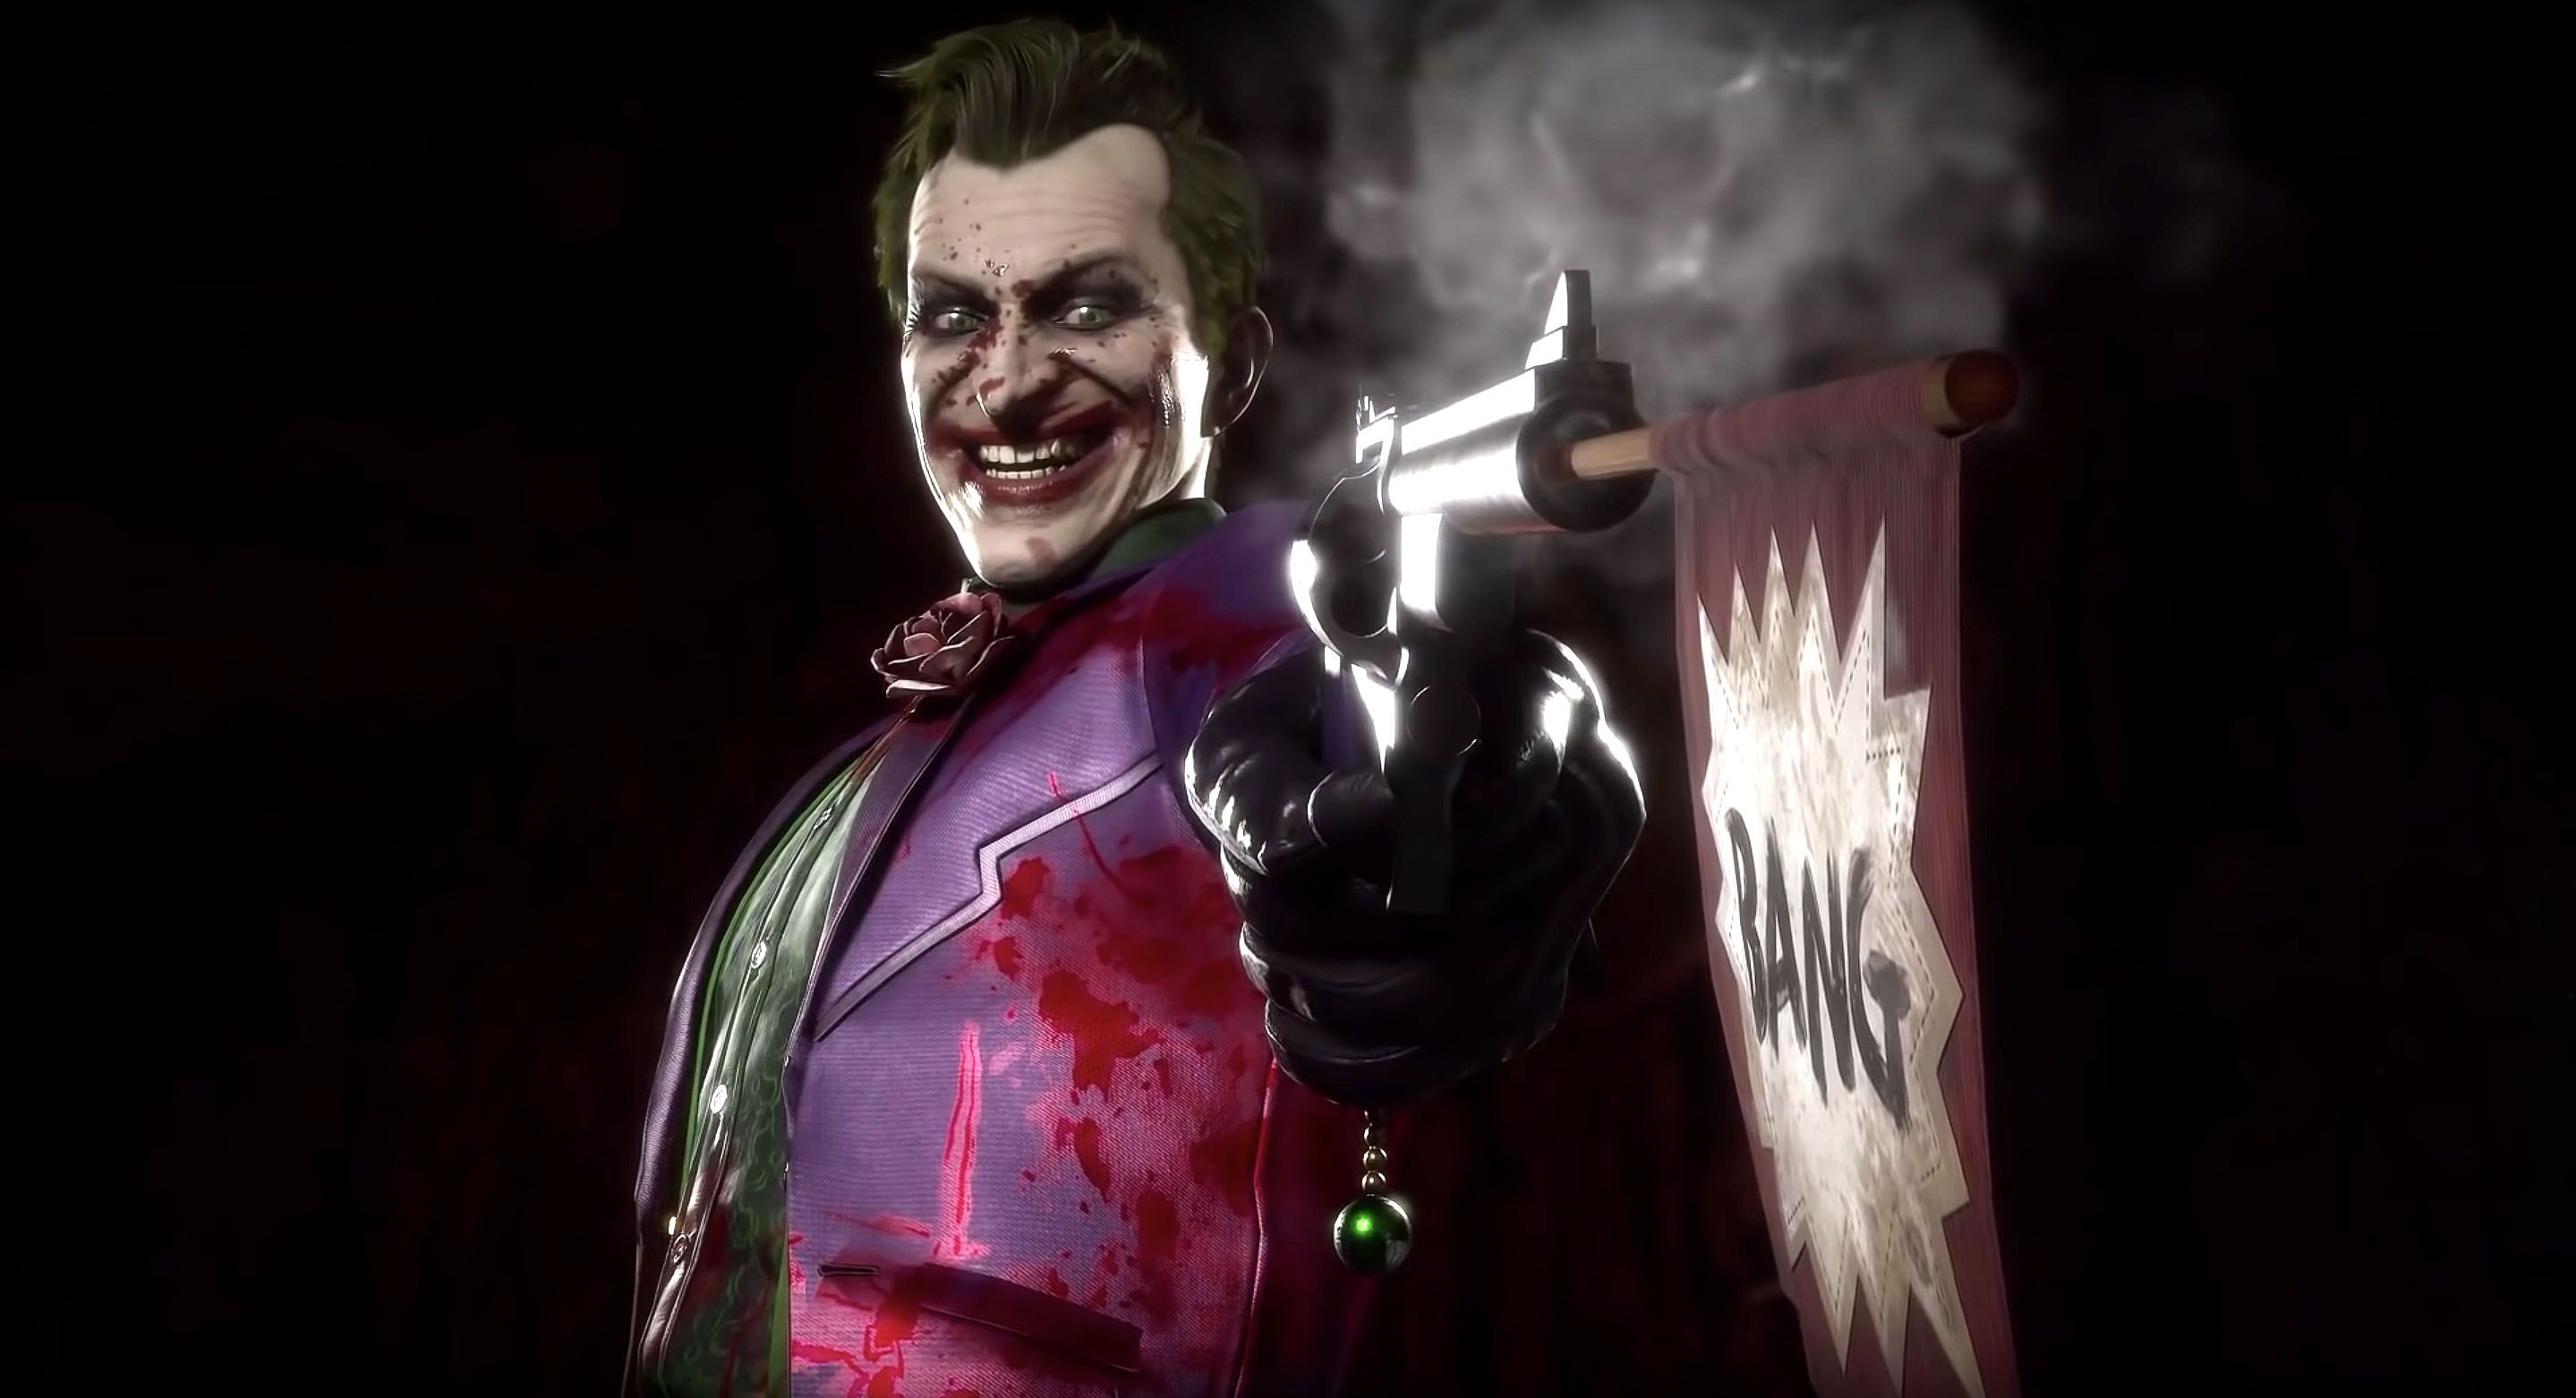 Mortal Kombat 11 Joker Release Date Joker Dlc Character Reaction